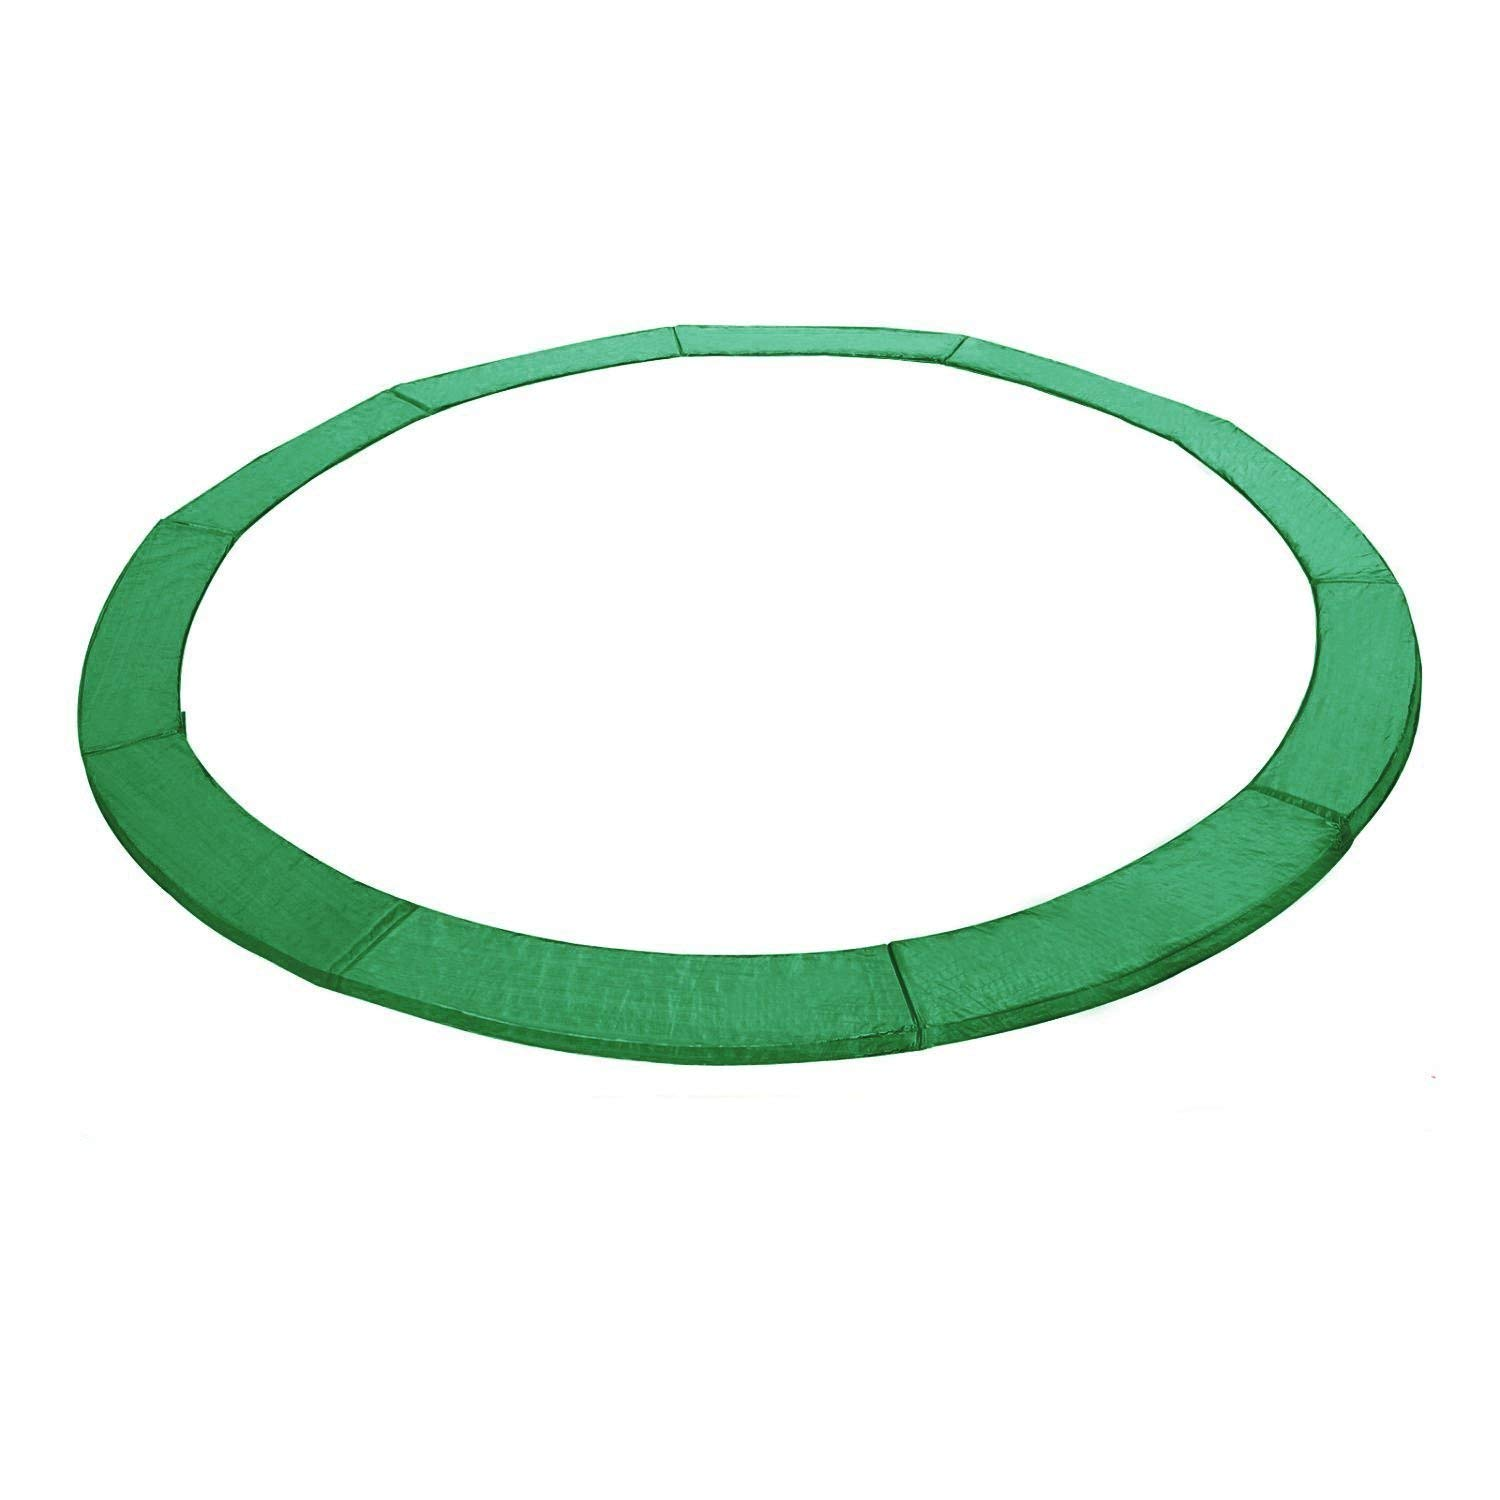 Exacme Trampoline Replacement Safety Pad Frame Spring Blue, or Green Color Round Cover 10-16 FT Pad (Green, 12ft)